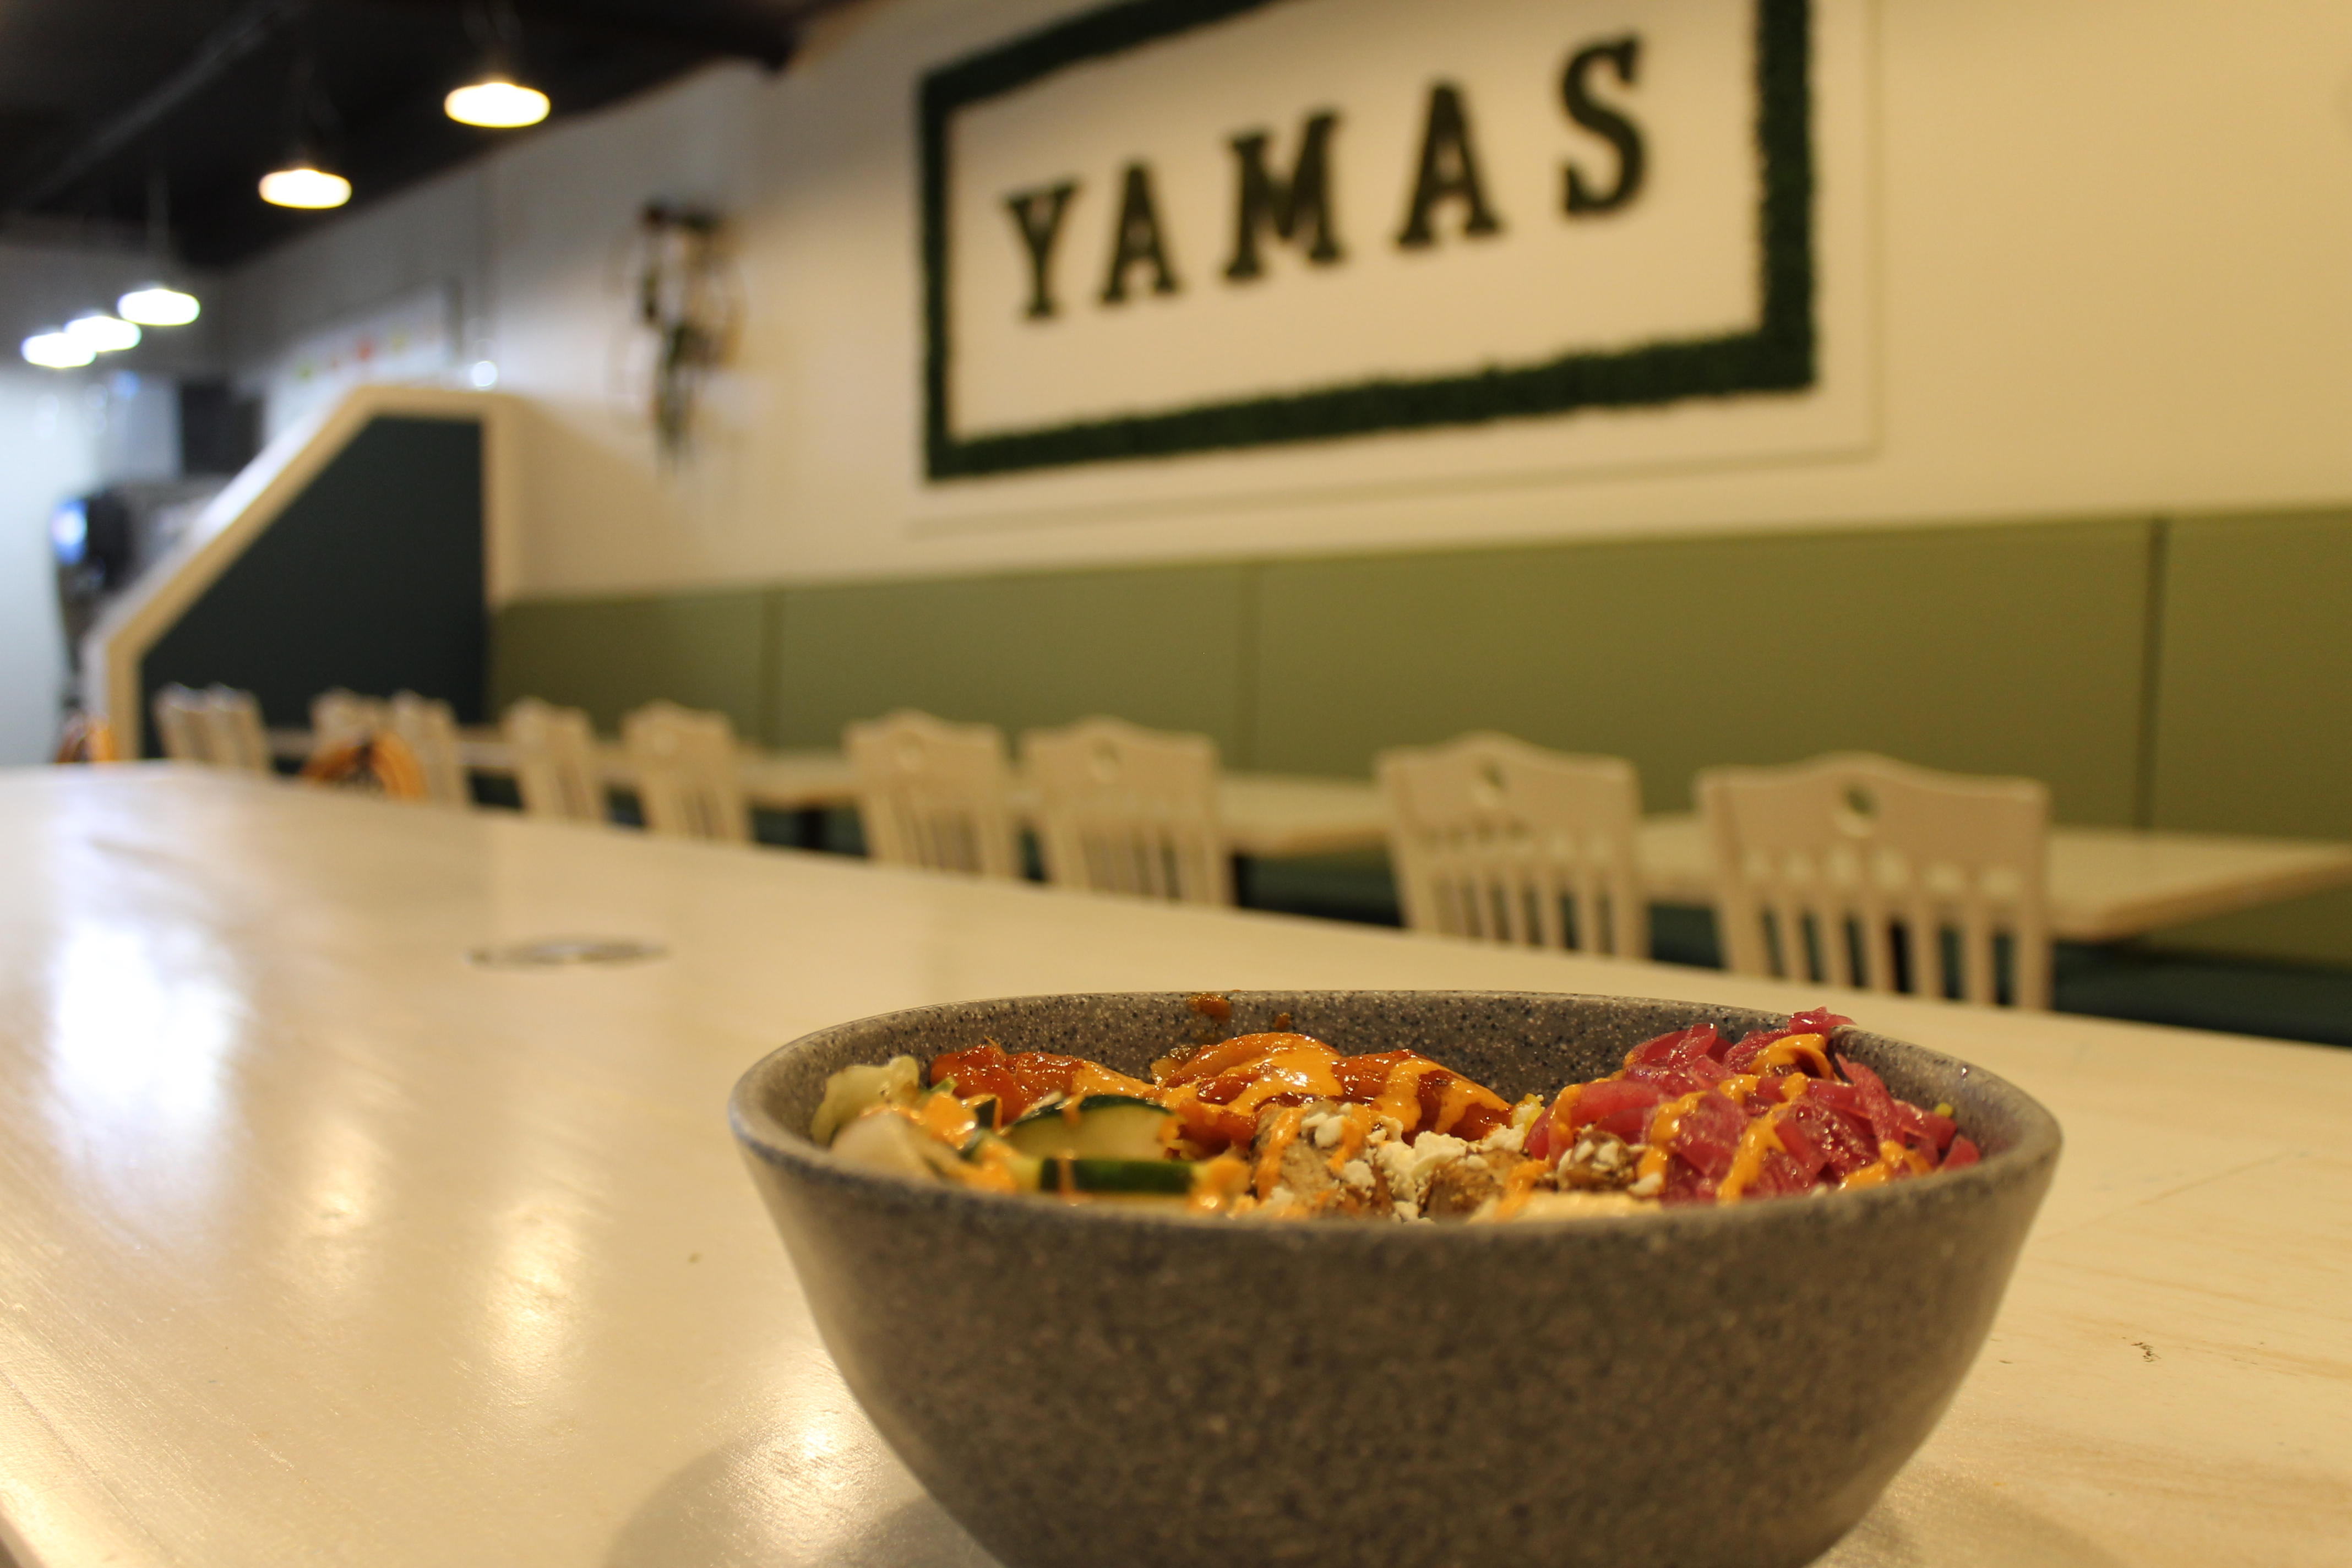 Chicken and rice bowl on table with yamas sign in background